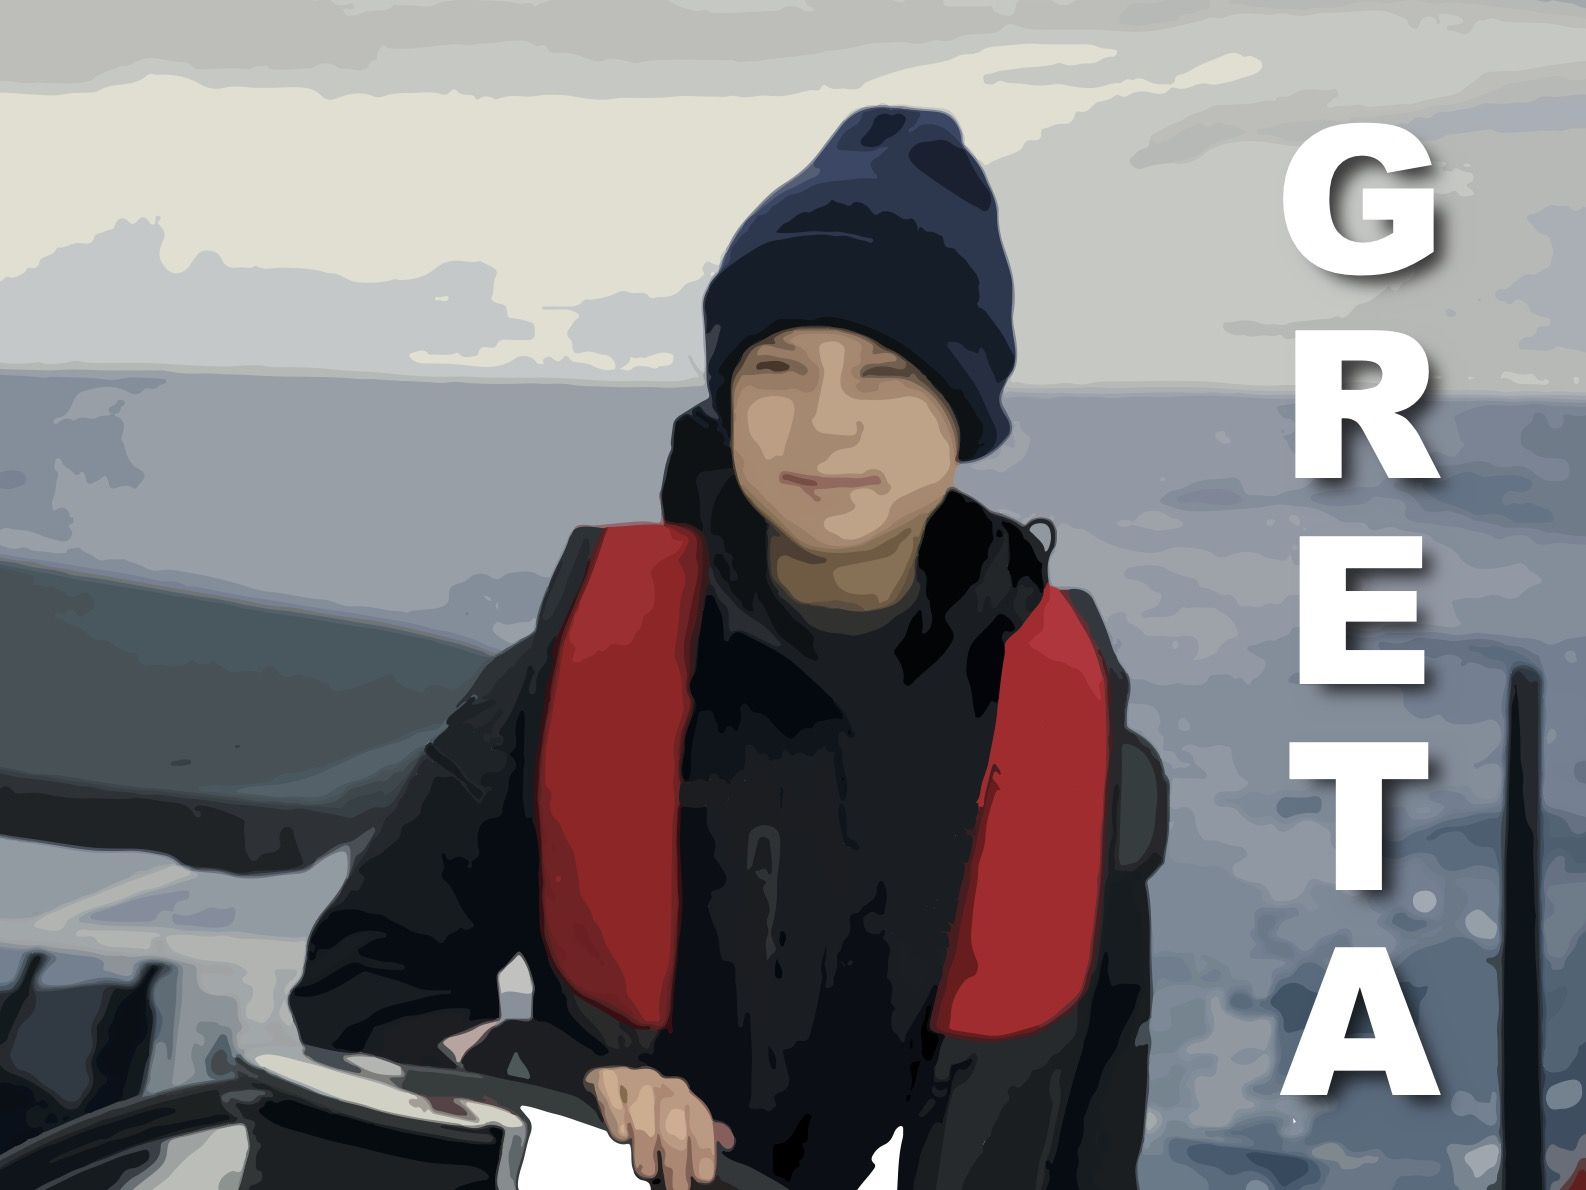 Greta Thunberg: A Year to Change the World Worksheets